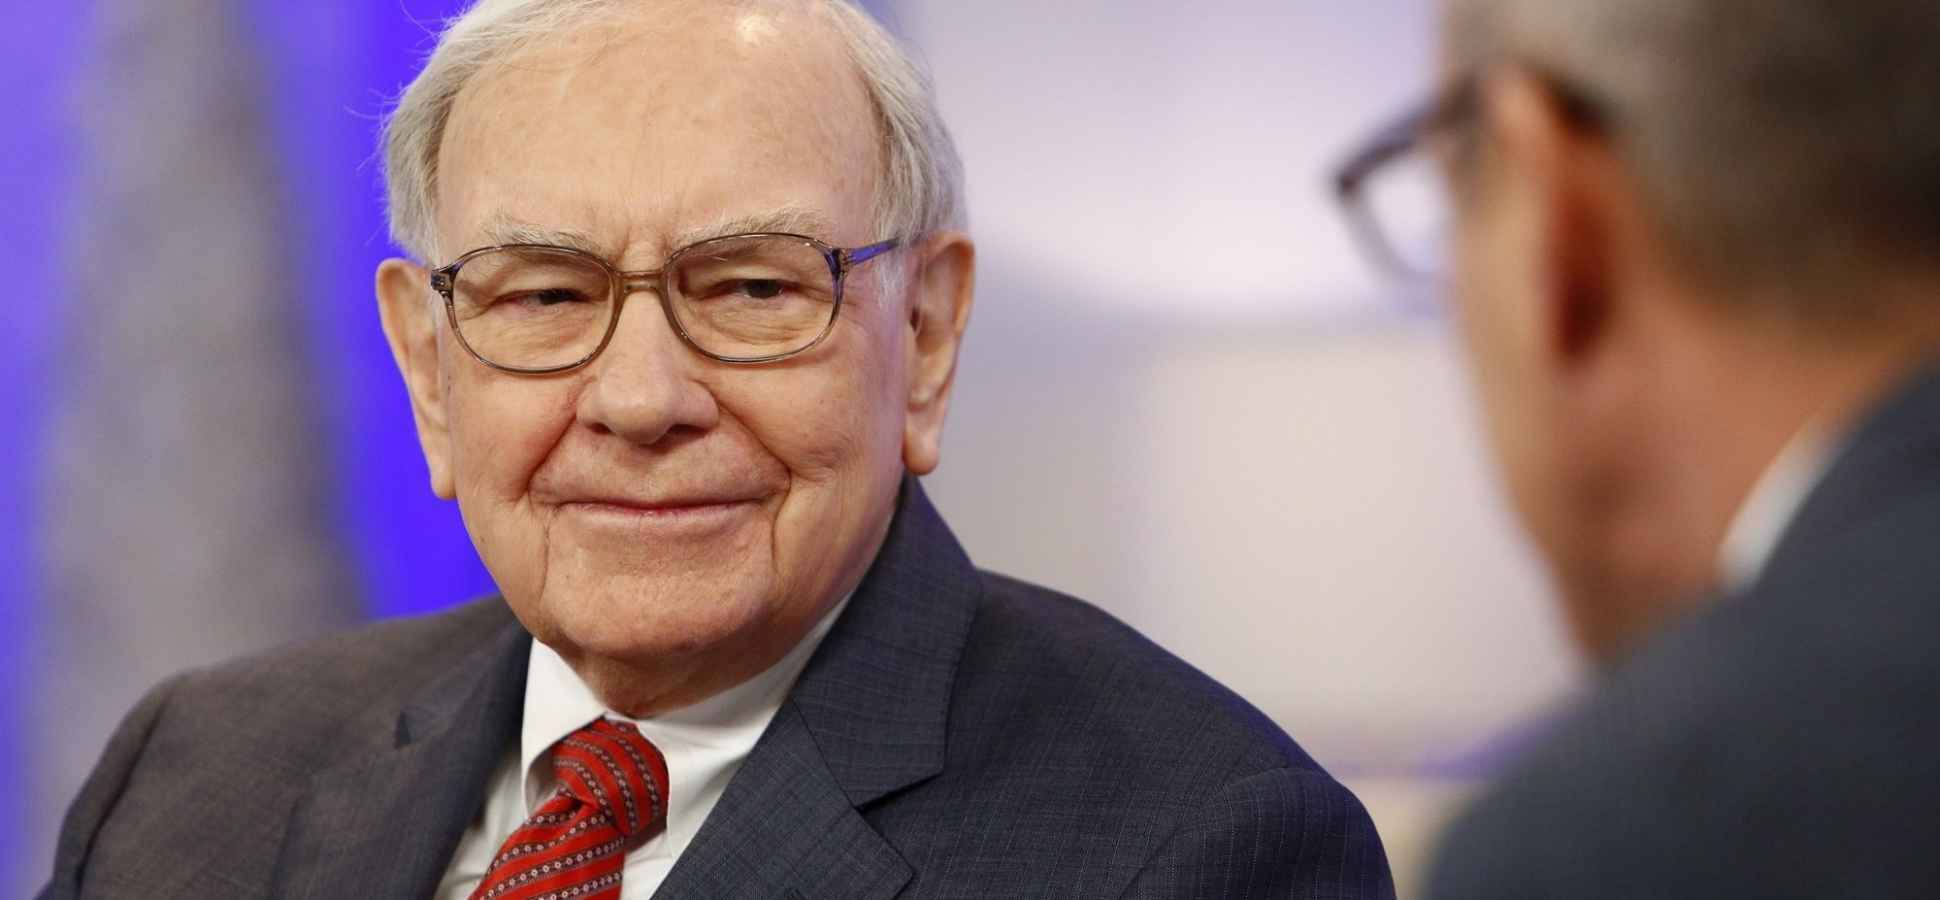 8 Books Warren Buffett Tells Millionaires to Read